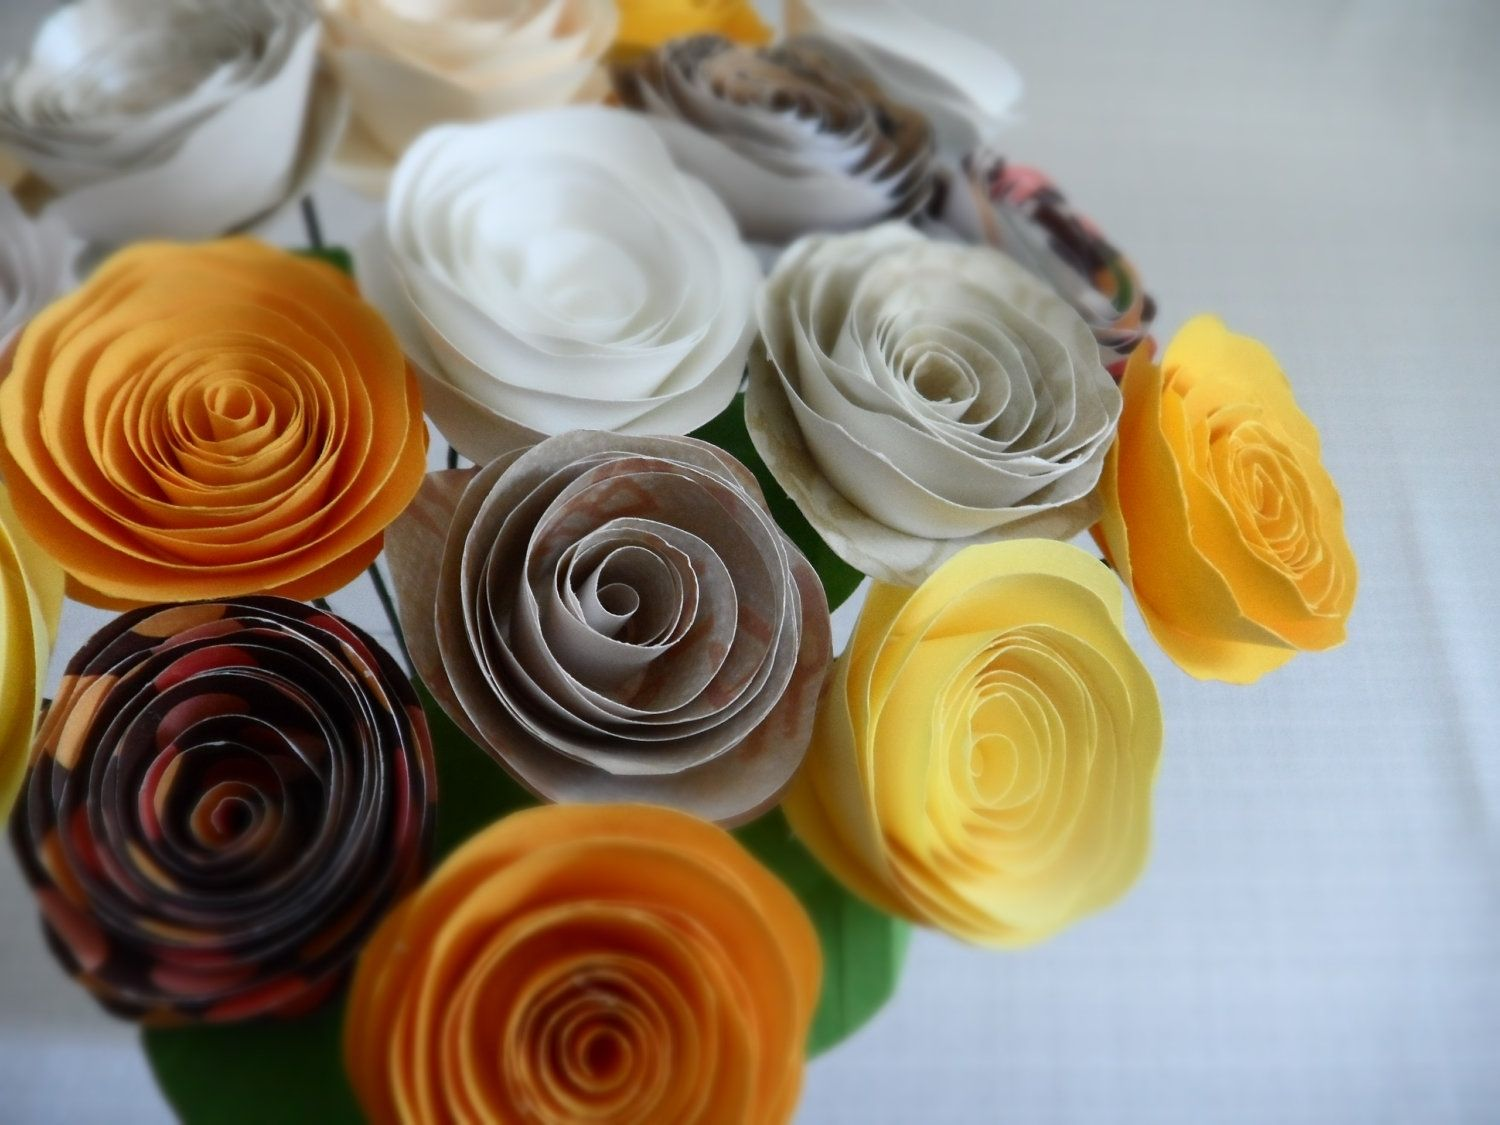 Handmade Spiral Paper Roses Apricot Bouquet By Dear Betsy